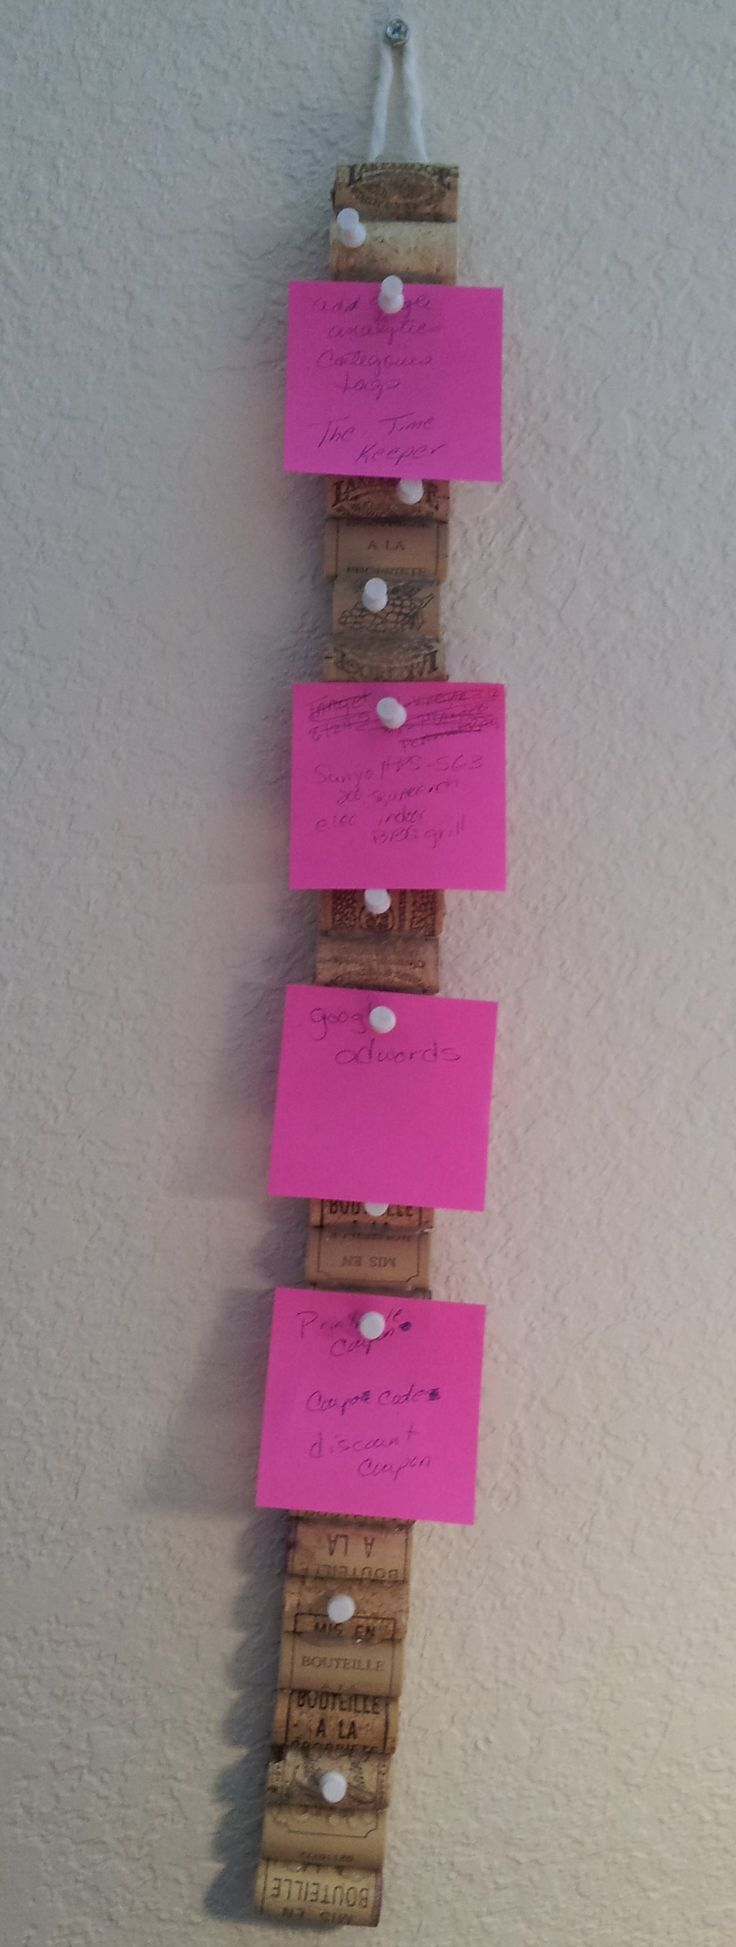 Wine Bottle Cork Projects | Your email address will not be published. Required fields are marked *